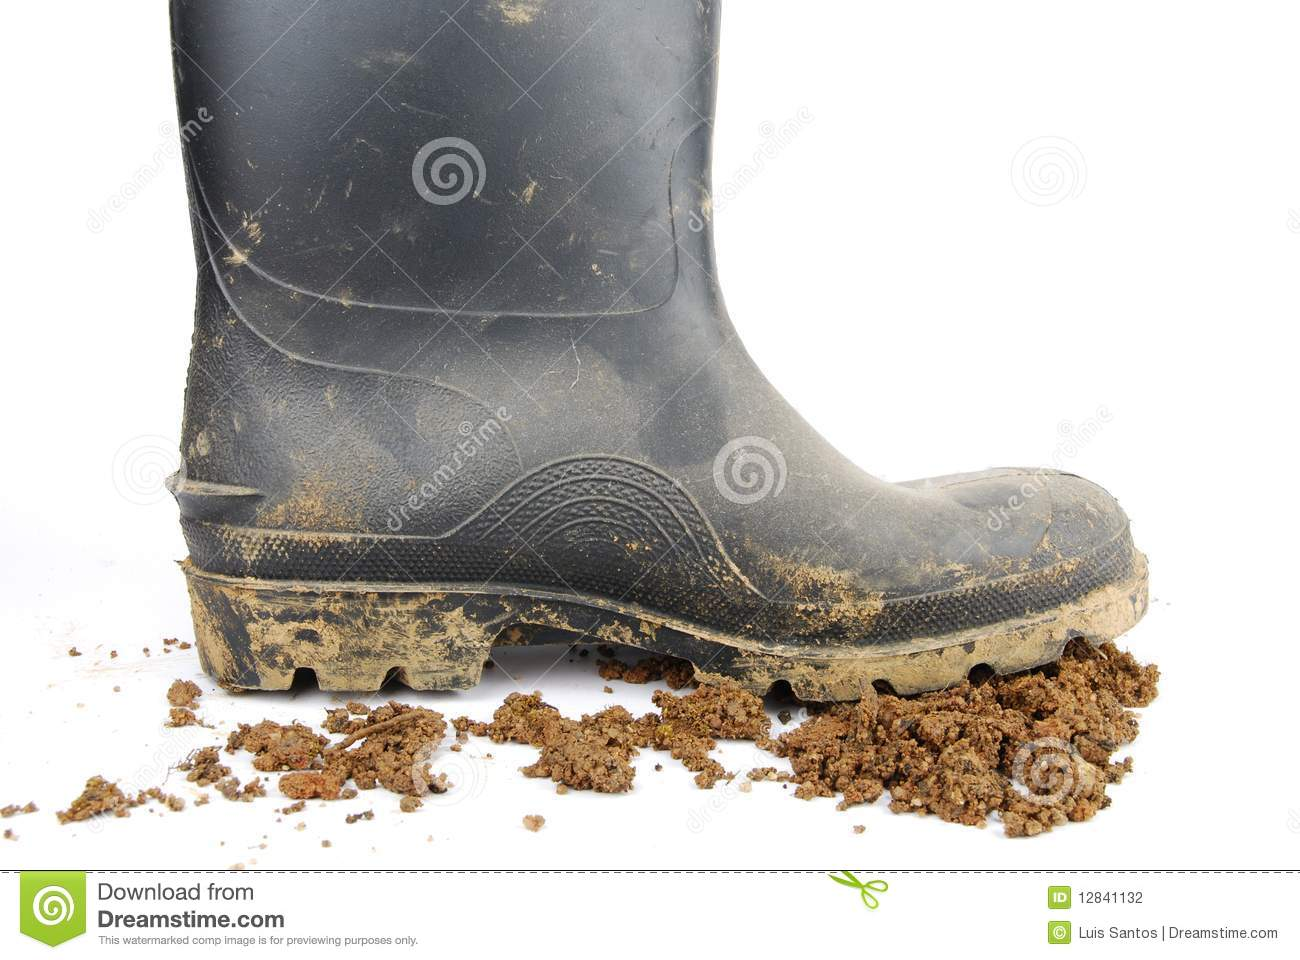 c64df9dfe22 Agricultural boots stock photo. Image of botany, protective - 12841132